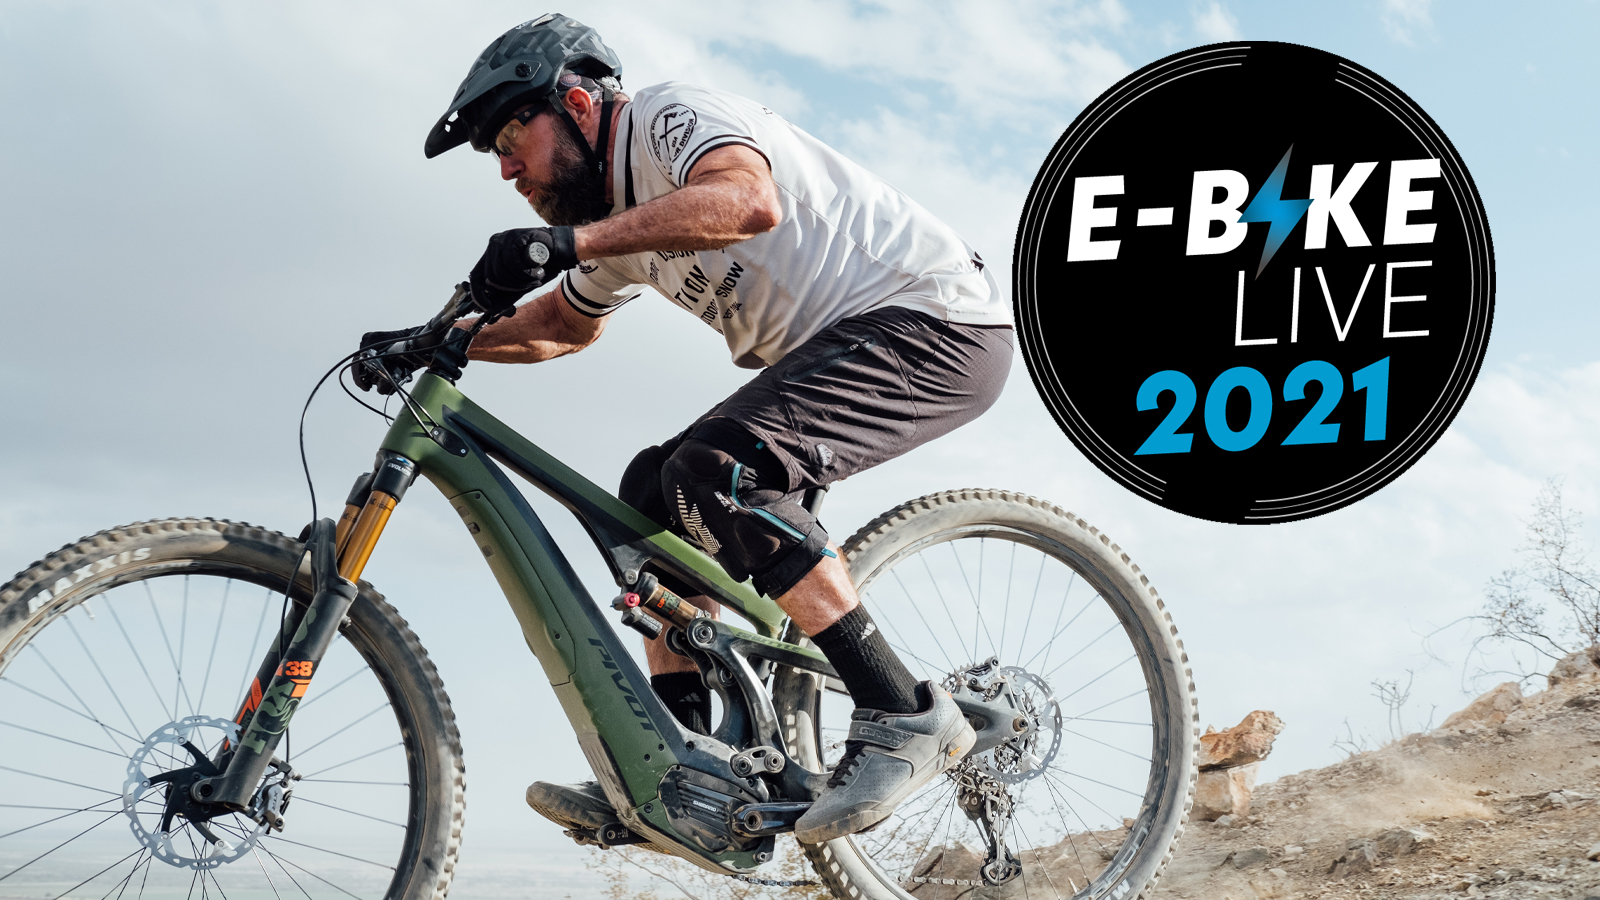 Best components and accessories for riding your e-bike safely